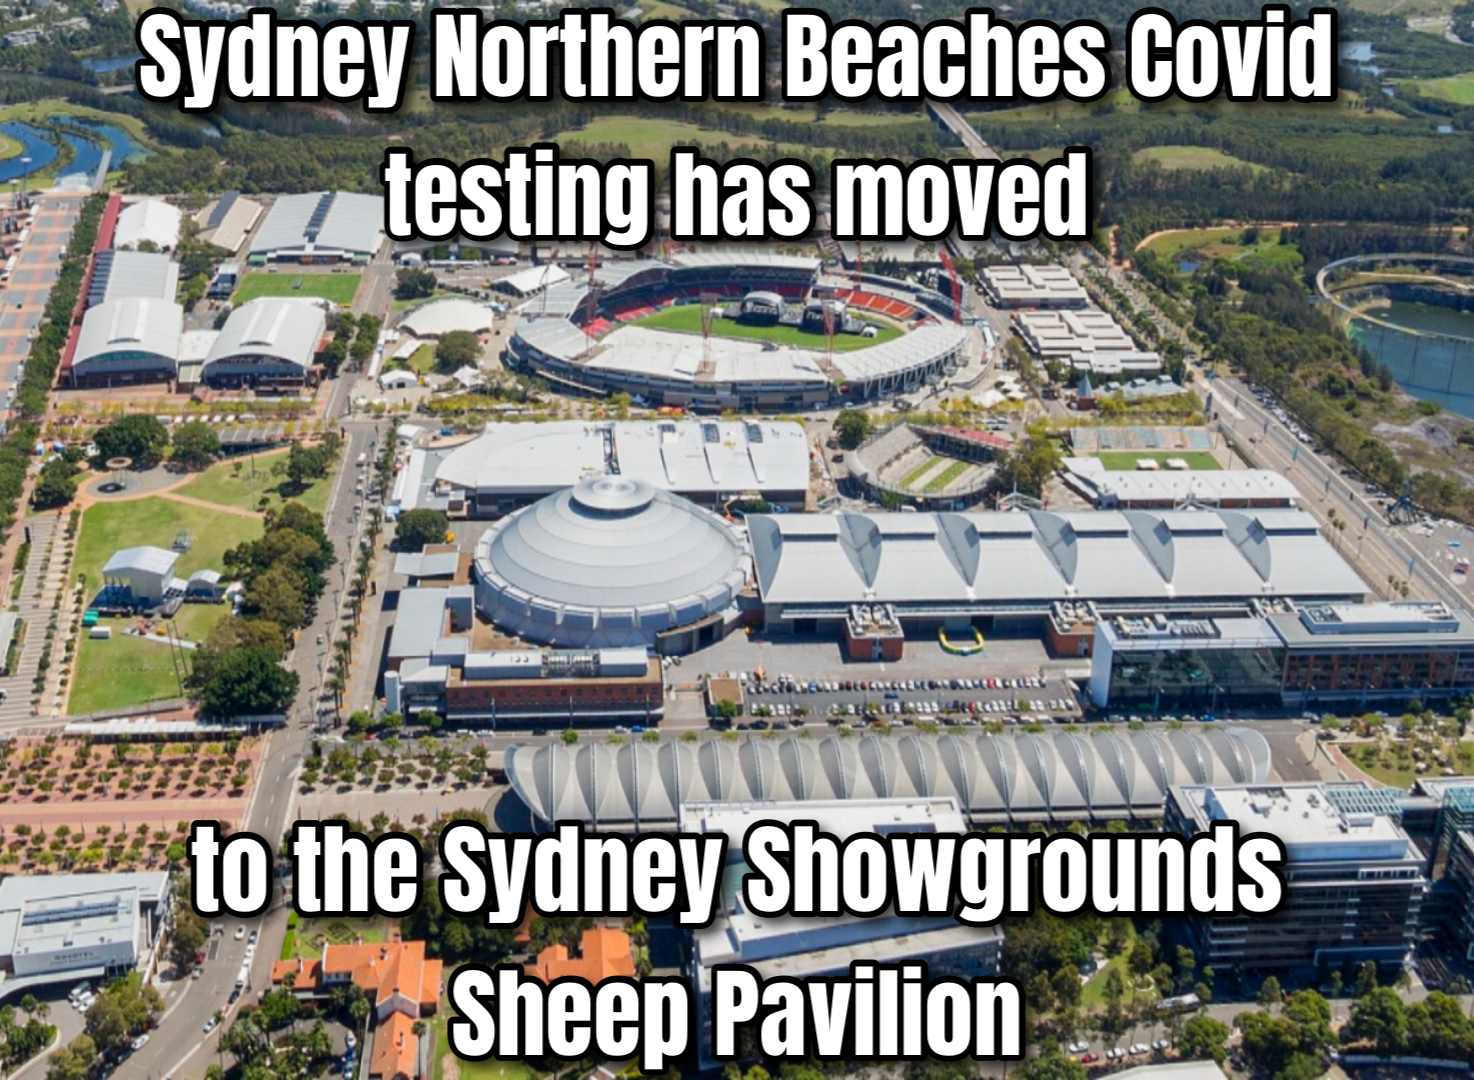 Covid testing relocated to Sheep Pavilion